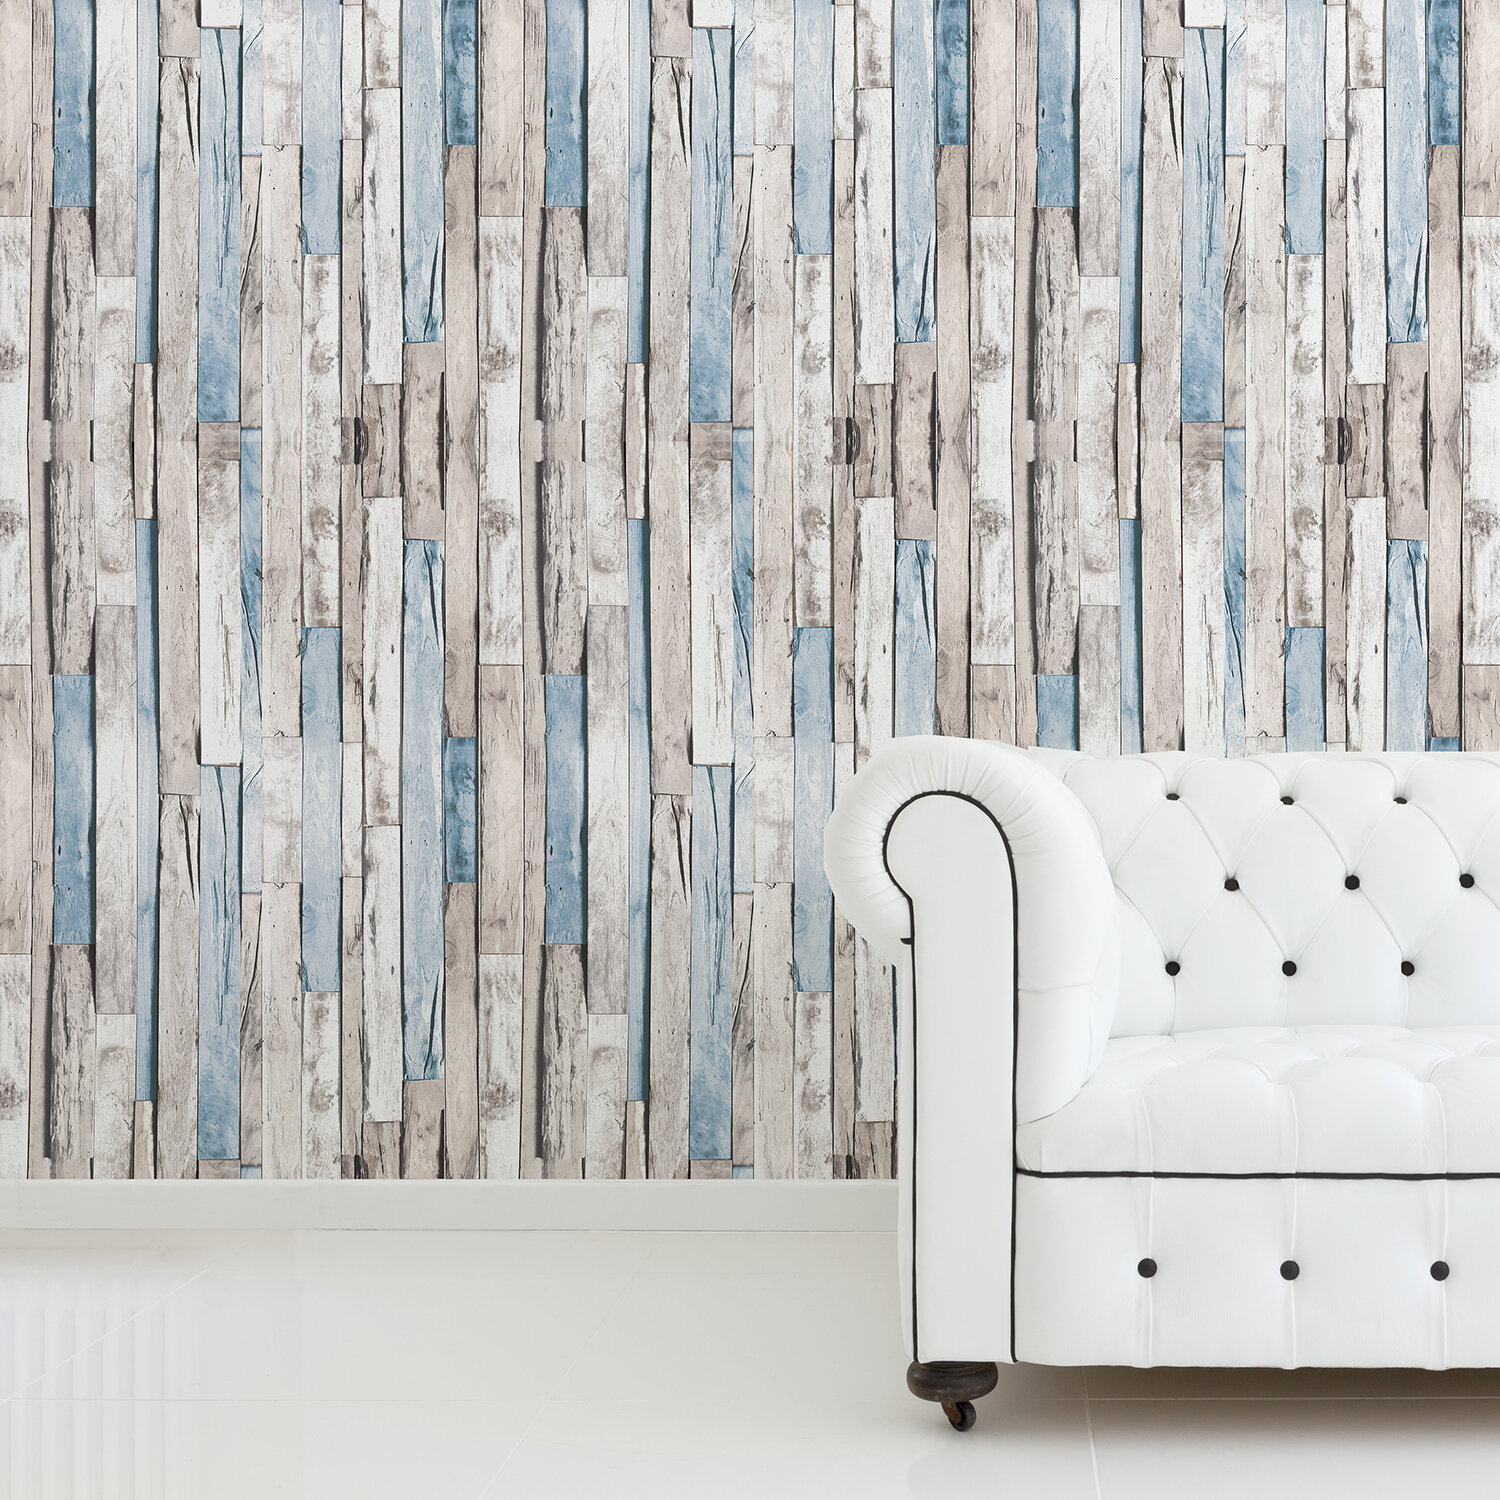 Millwood Pines Embarcadero Bleaching Timber 70 9 L X 47 3 W Peel And Stick Wallpaper Tile Reviews Wayfair